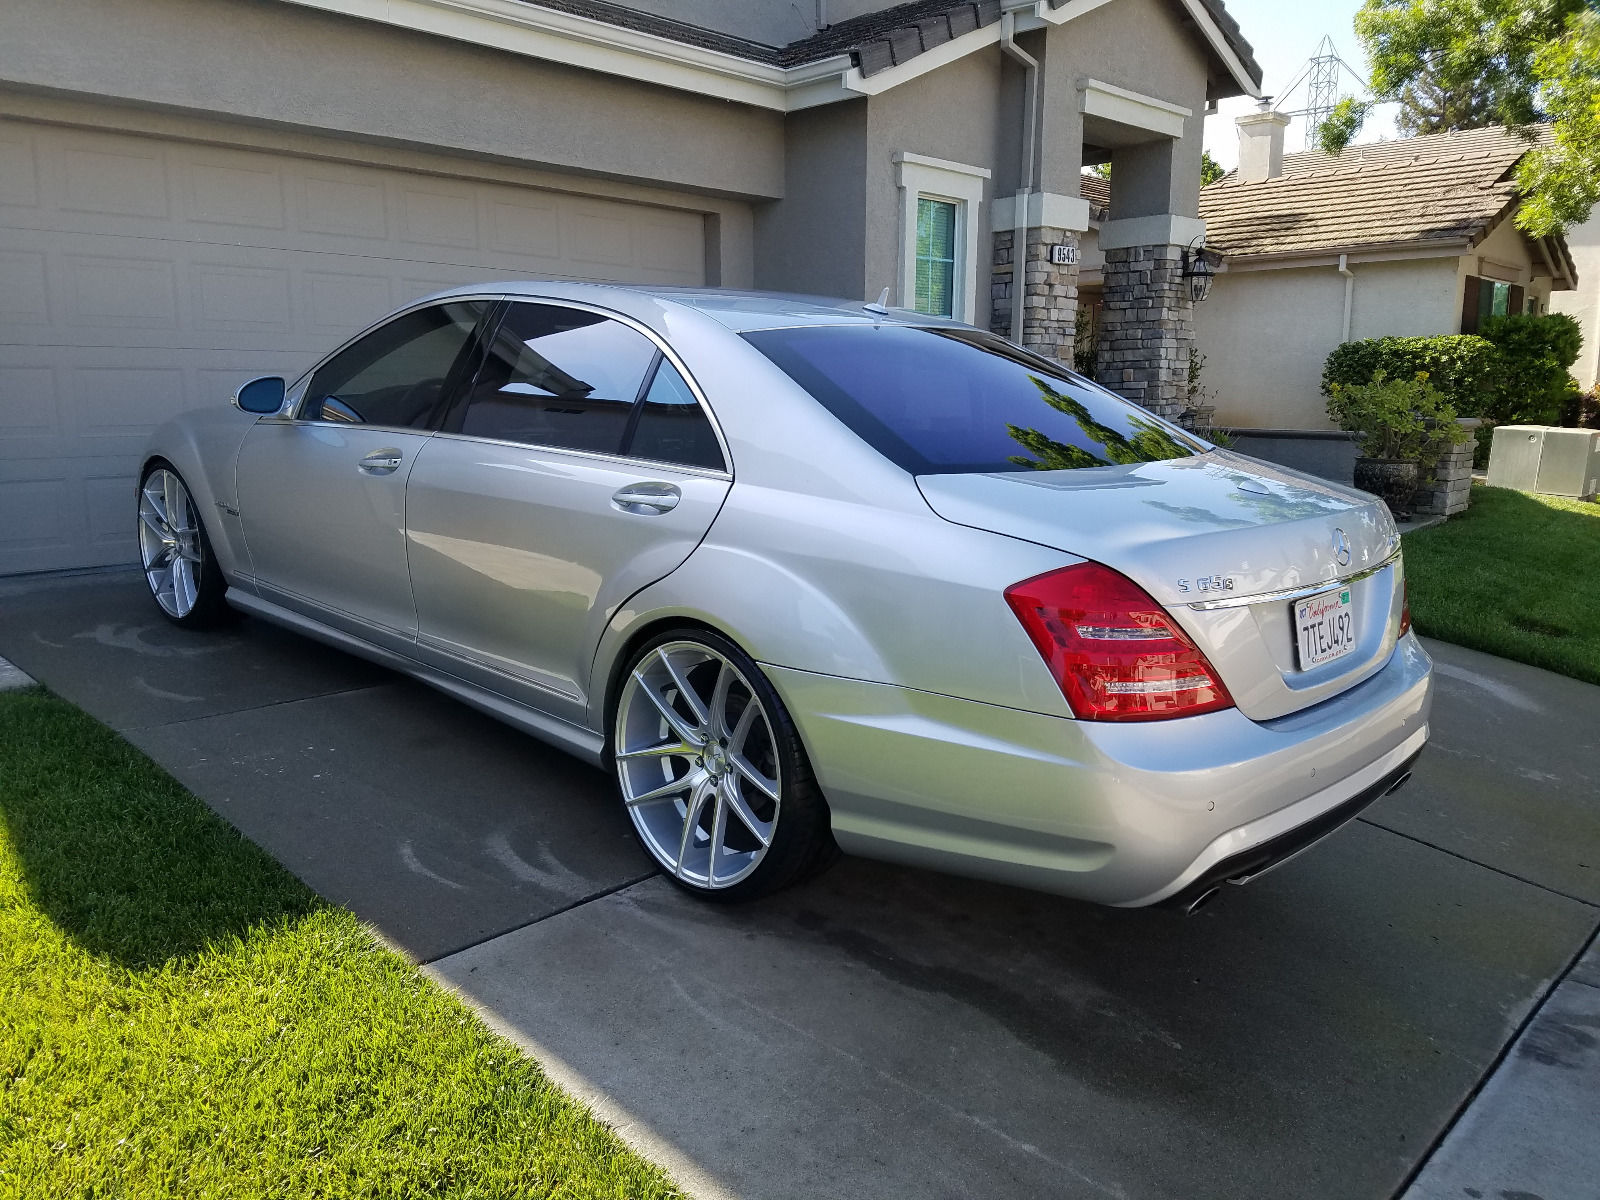 2007 mercedes benz w221 s550 on 22 niche wheels benztuning for Mercedes benz s550 rims